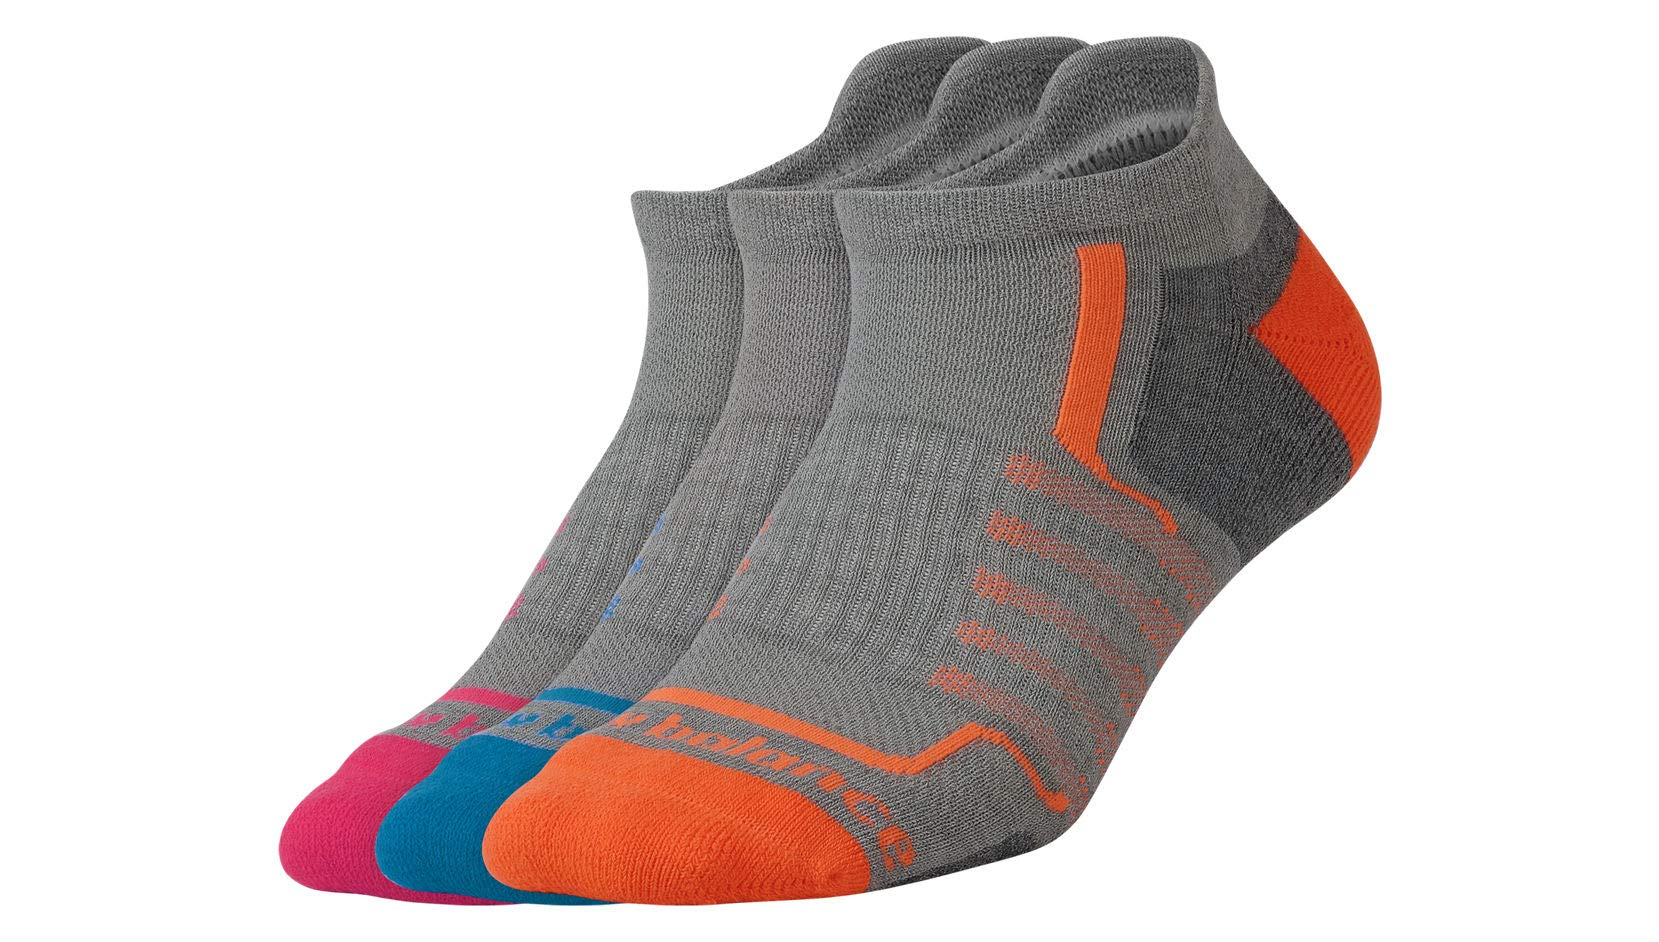 New Balance Women's Performance Low Cut Tab Socks (3 Pack), Grey/Pink/Orange/Teal, Size 6-10